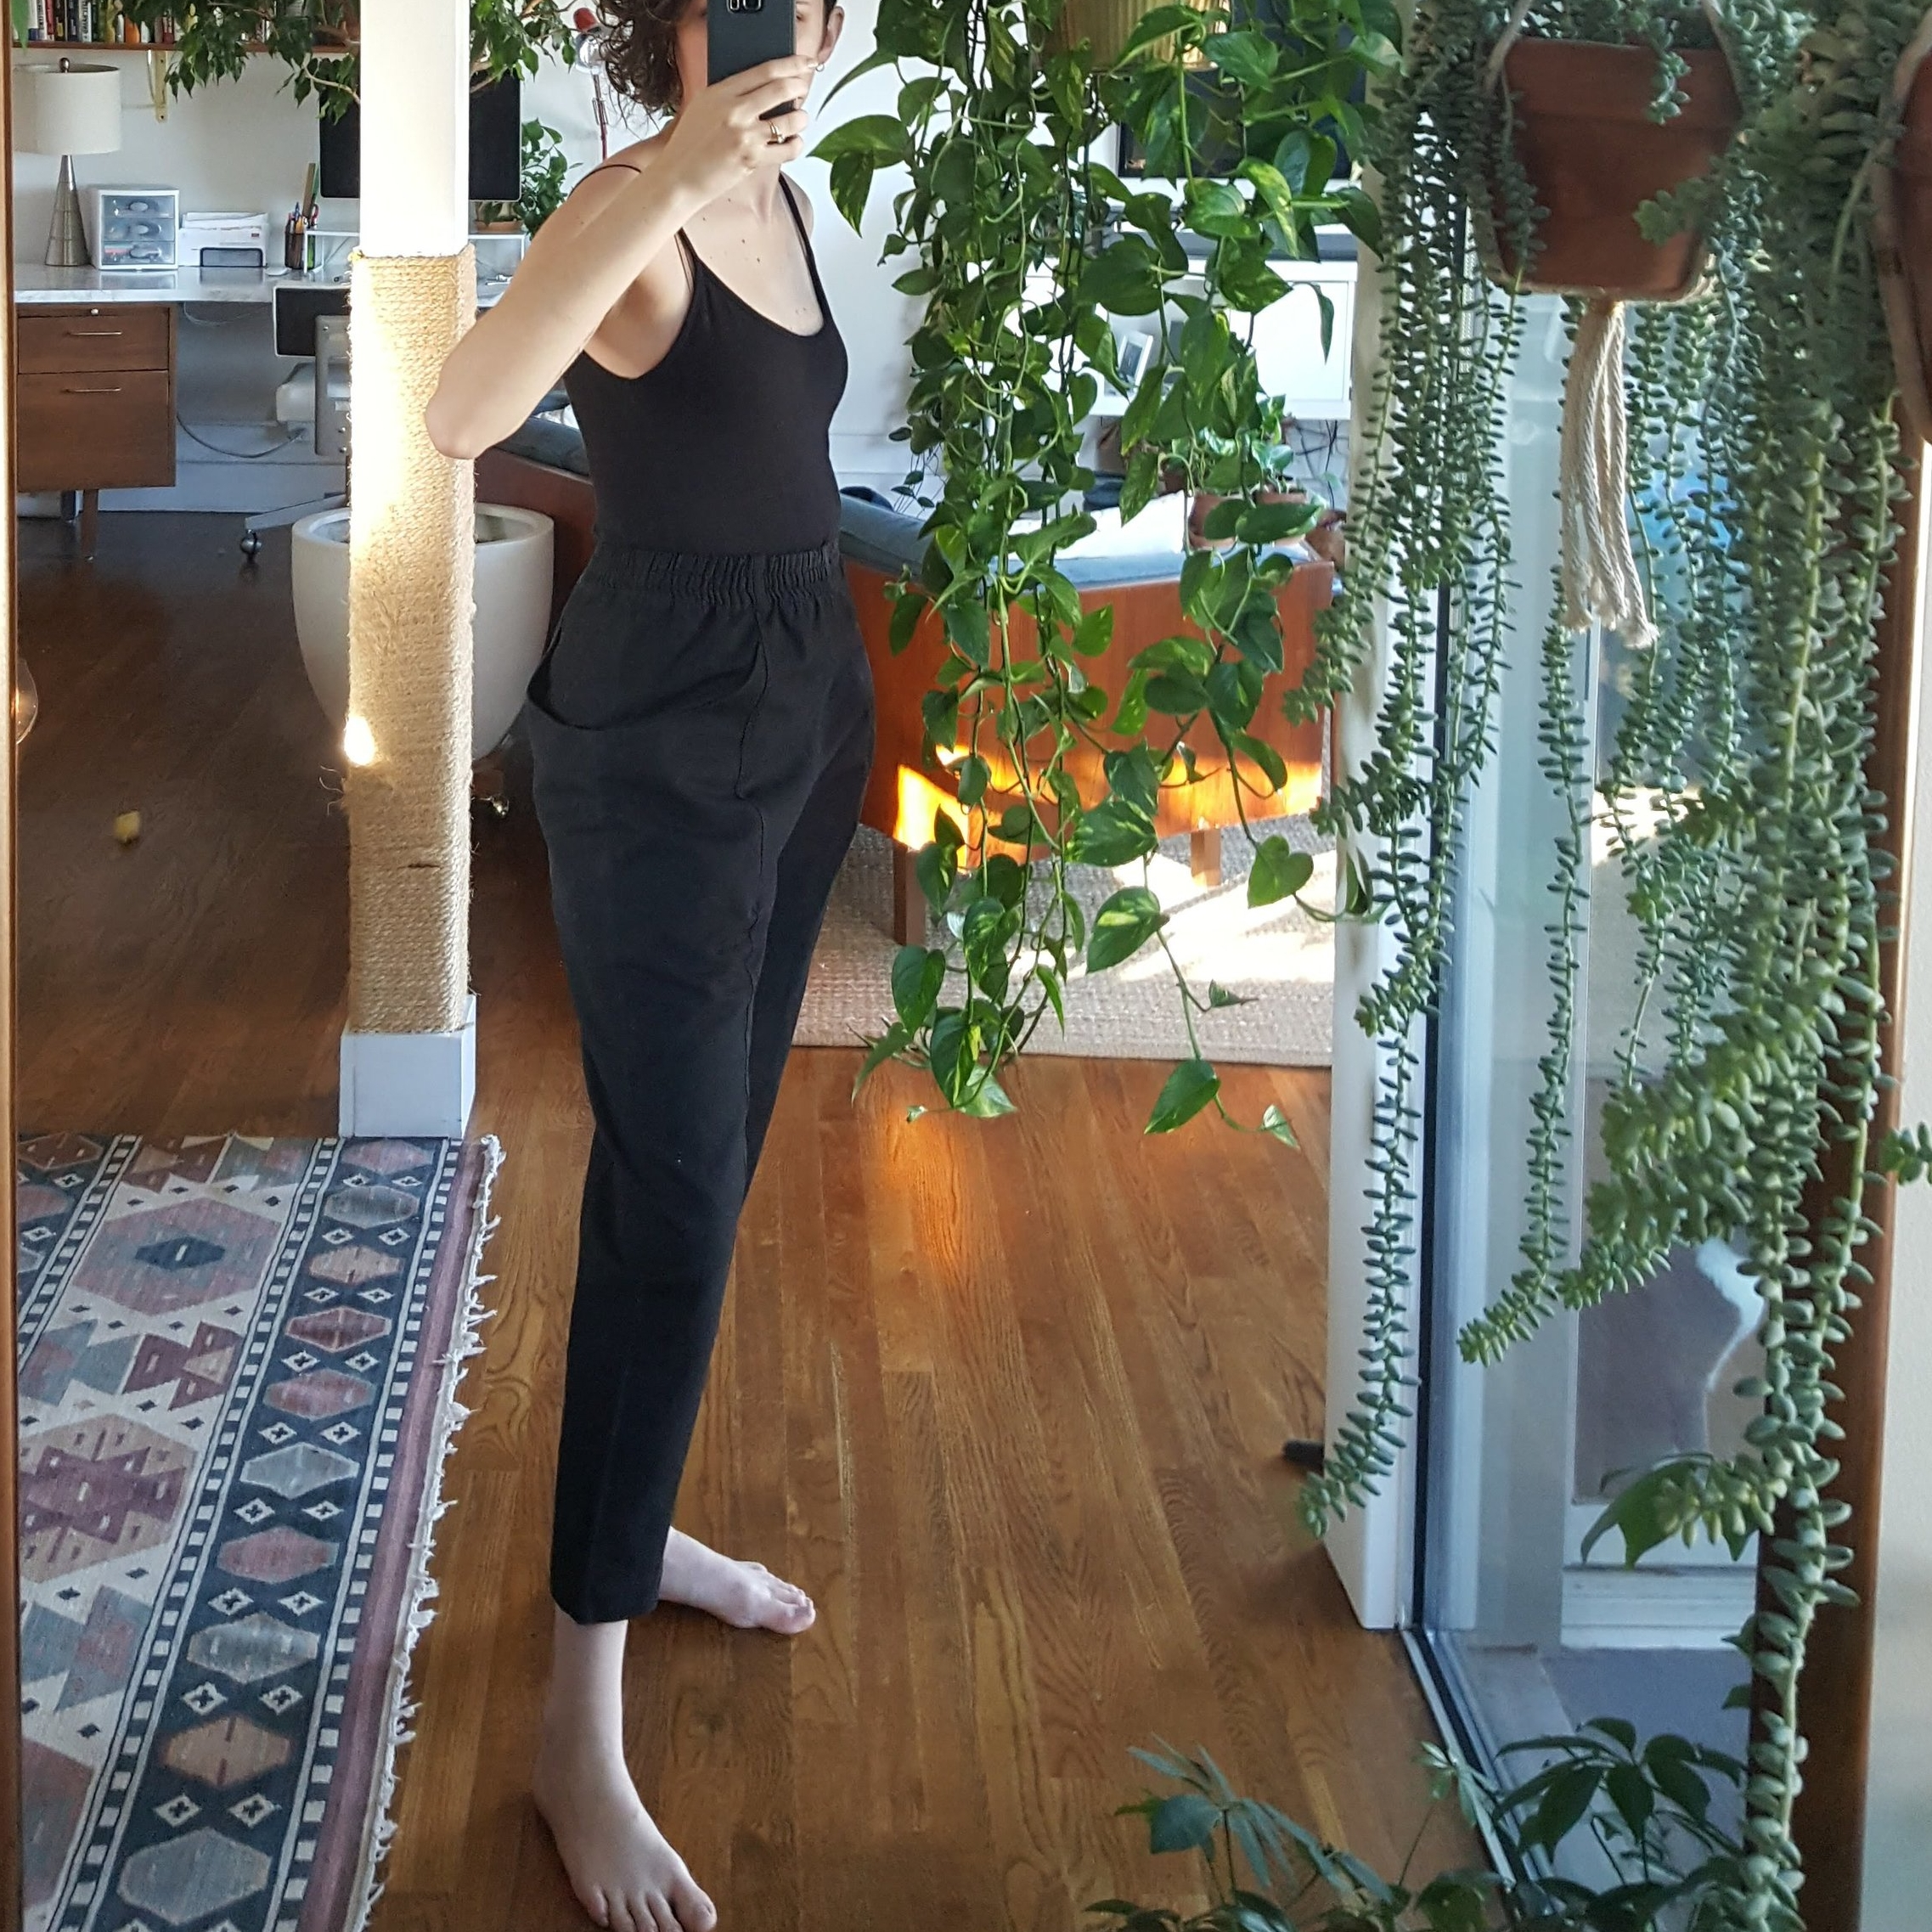 What works and what doesn't. - A review of the Elizabeth Suzann Canvas Clyde Work Pants